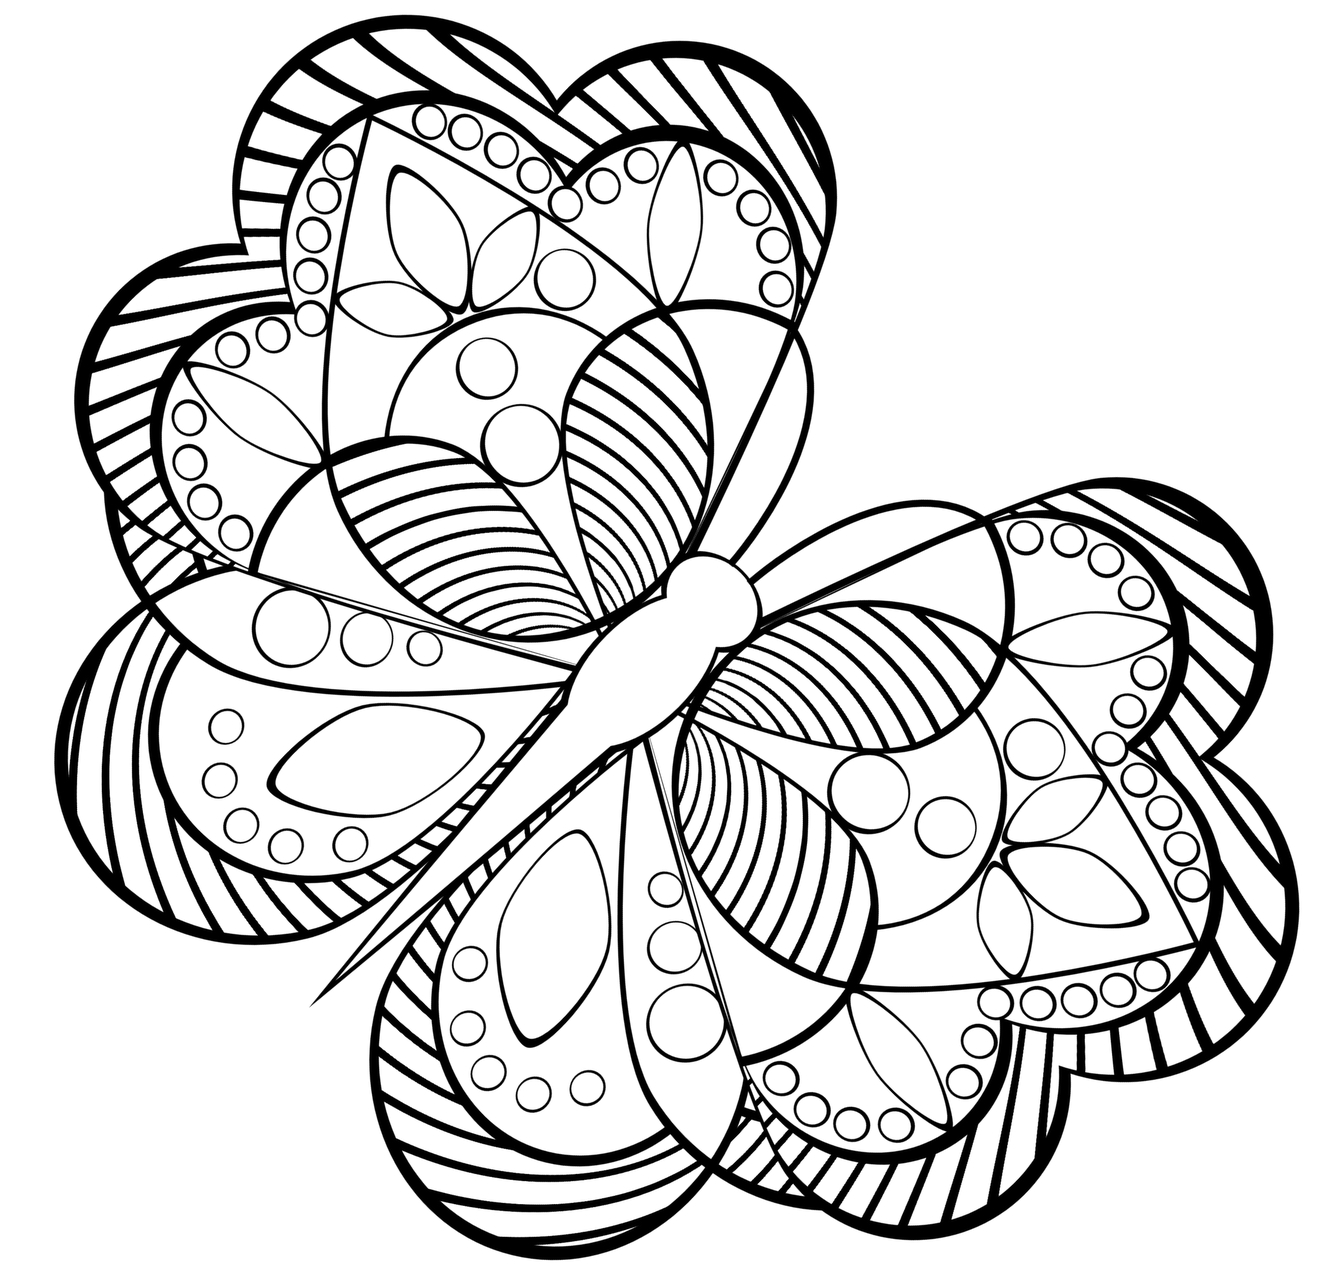 Free coloring pages com printable - Therapy Coloring Pages